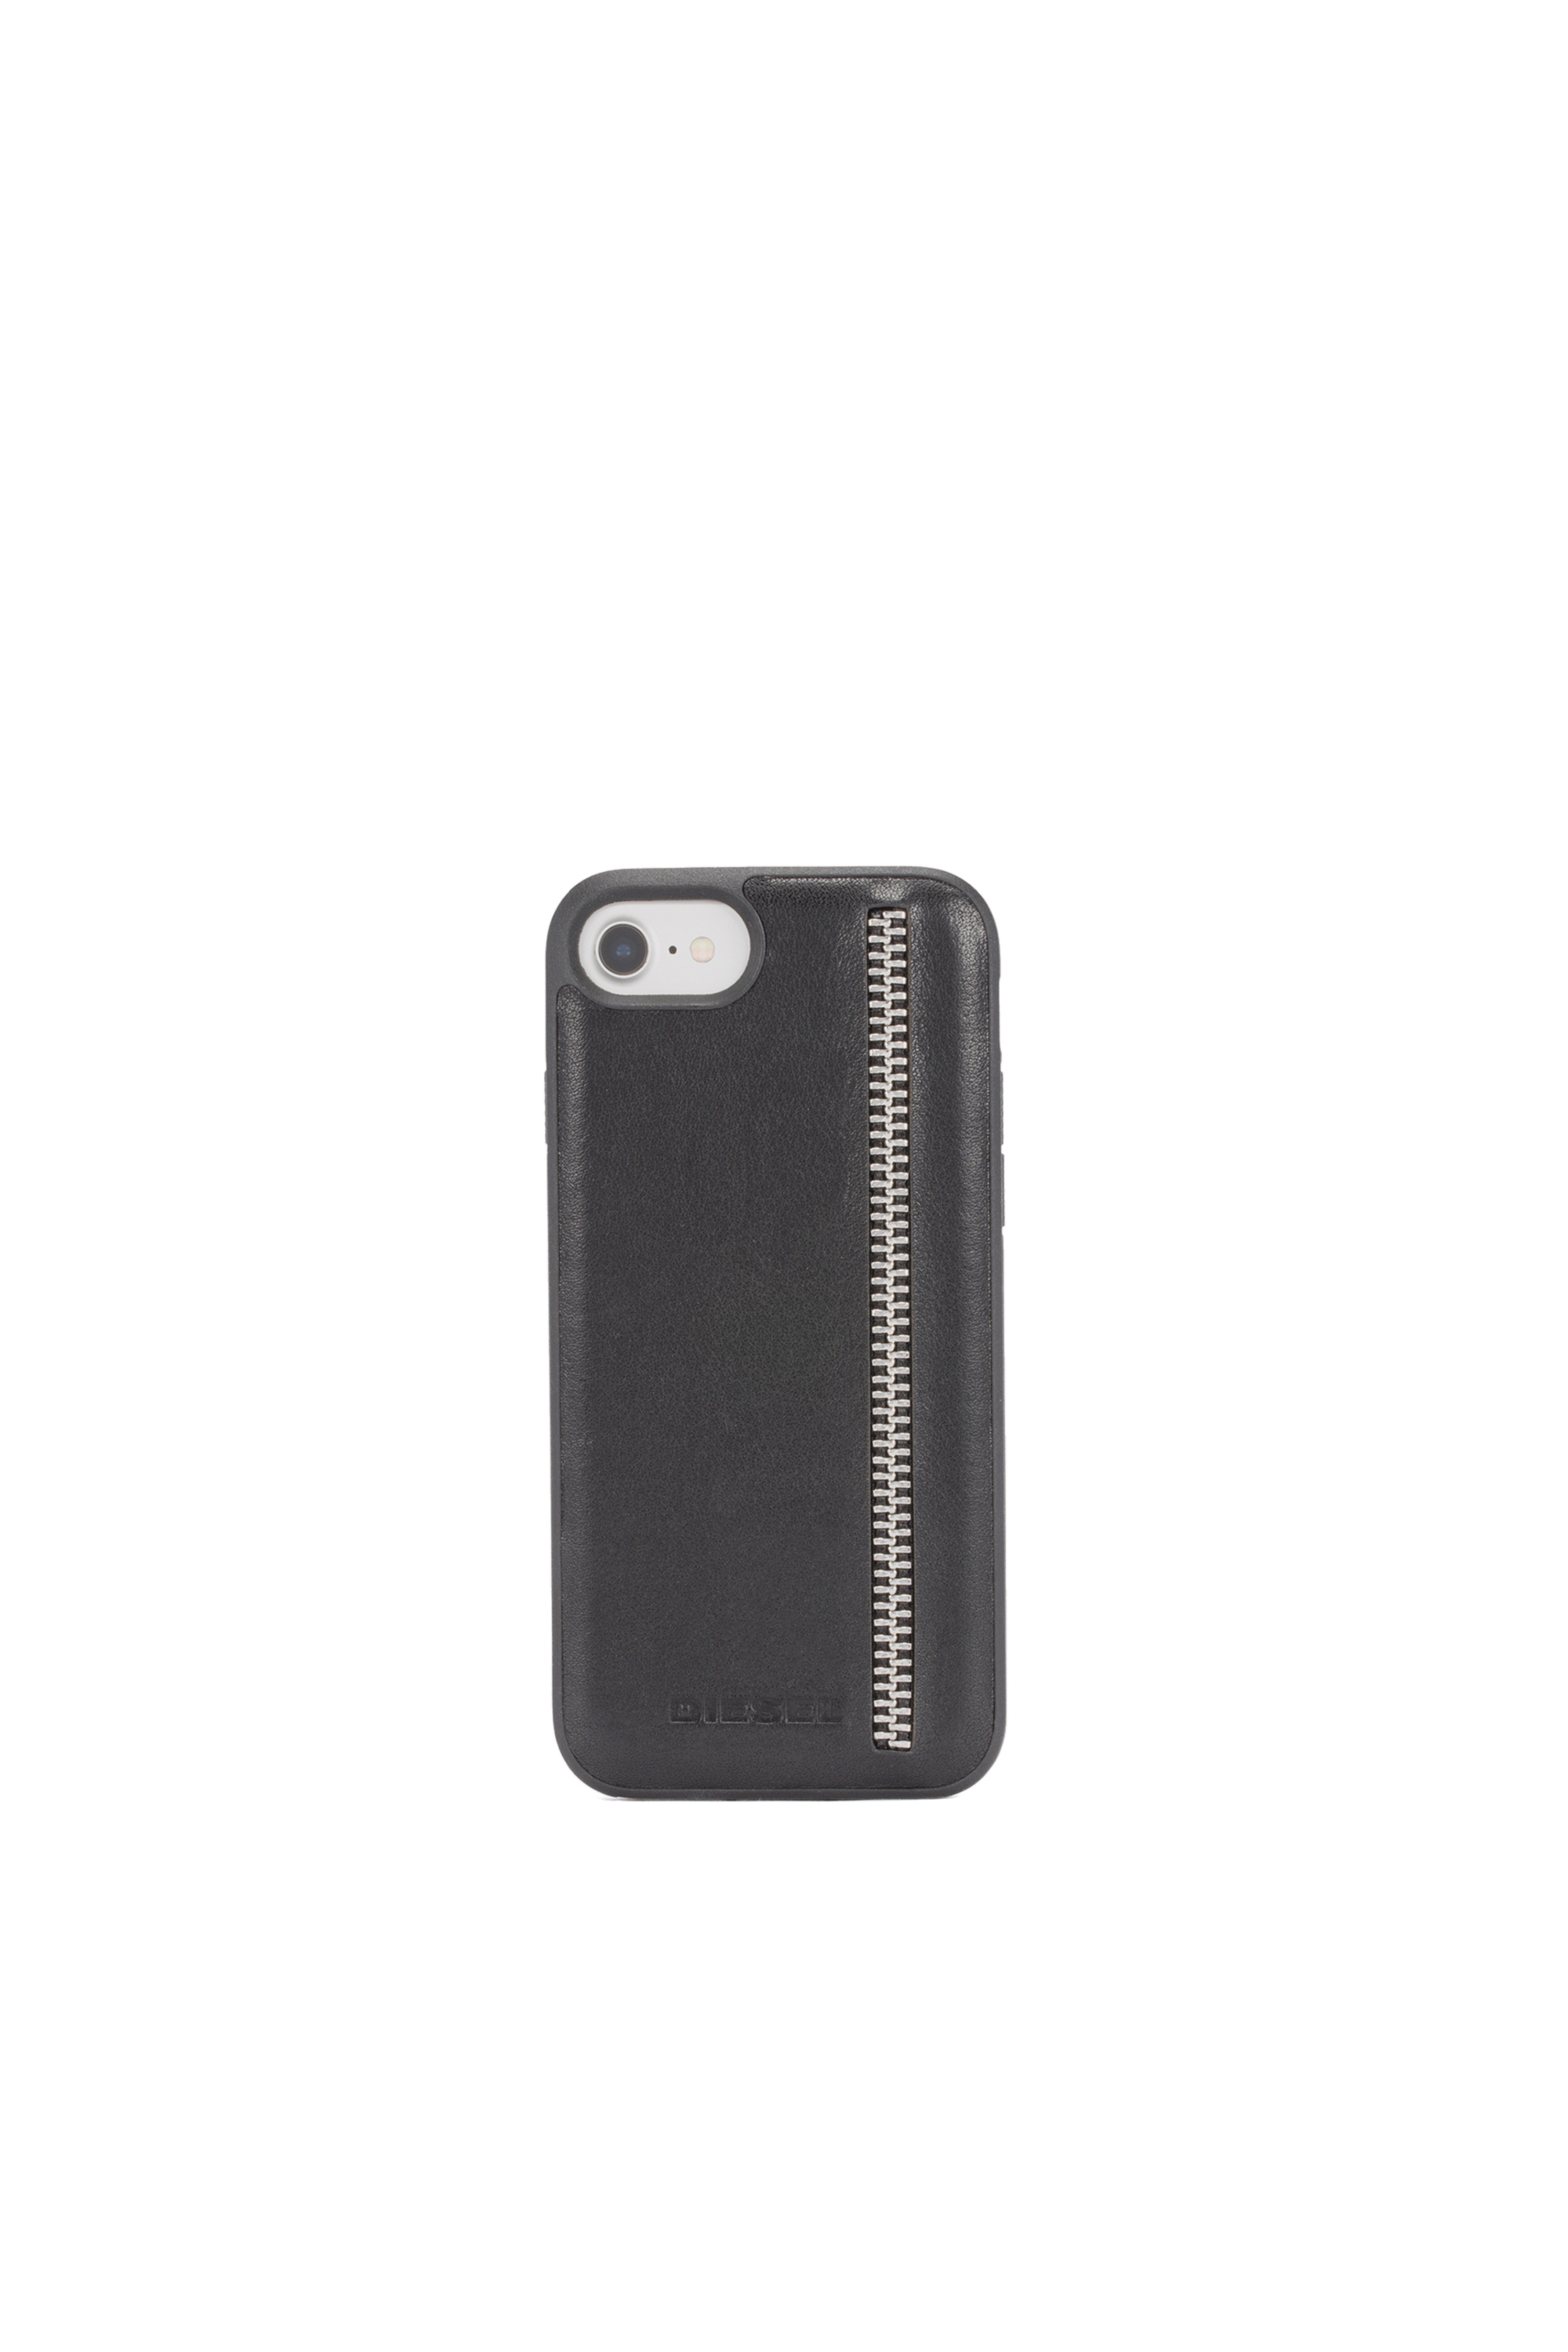 Diesel - ZIP BLACK LEATHER IPHONE 8/7/6s/6 CASE,  - Coques - Image 4